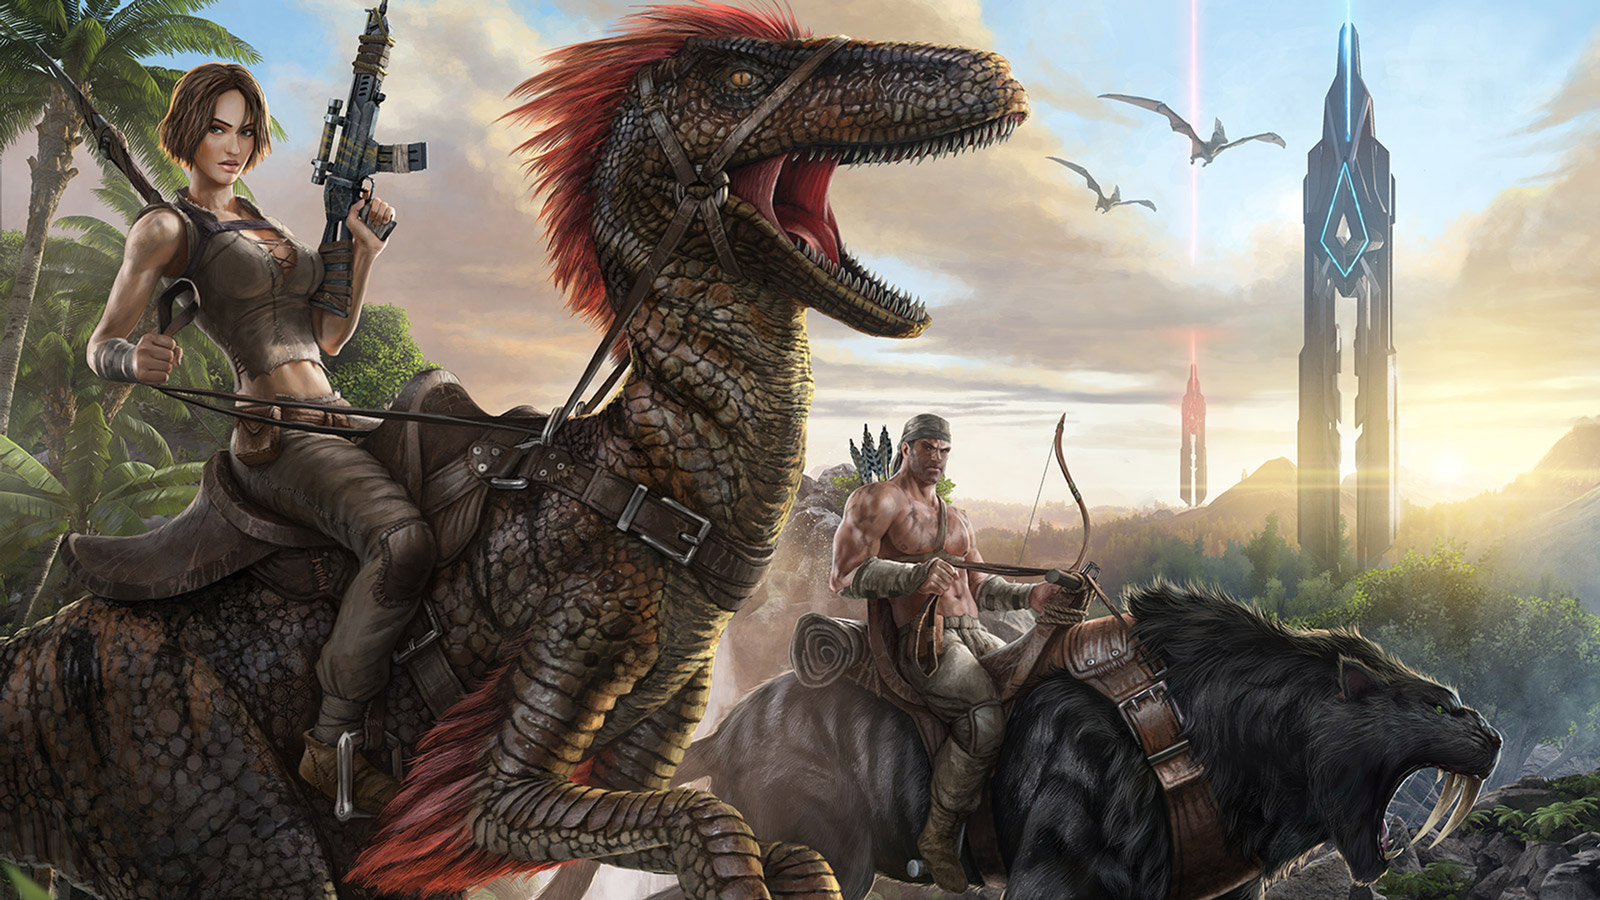 Free ARK: Survival Evolved Wallpaper in 1600x900